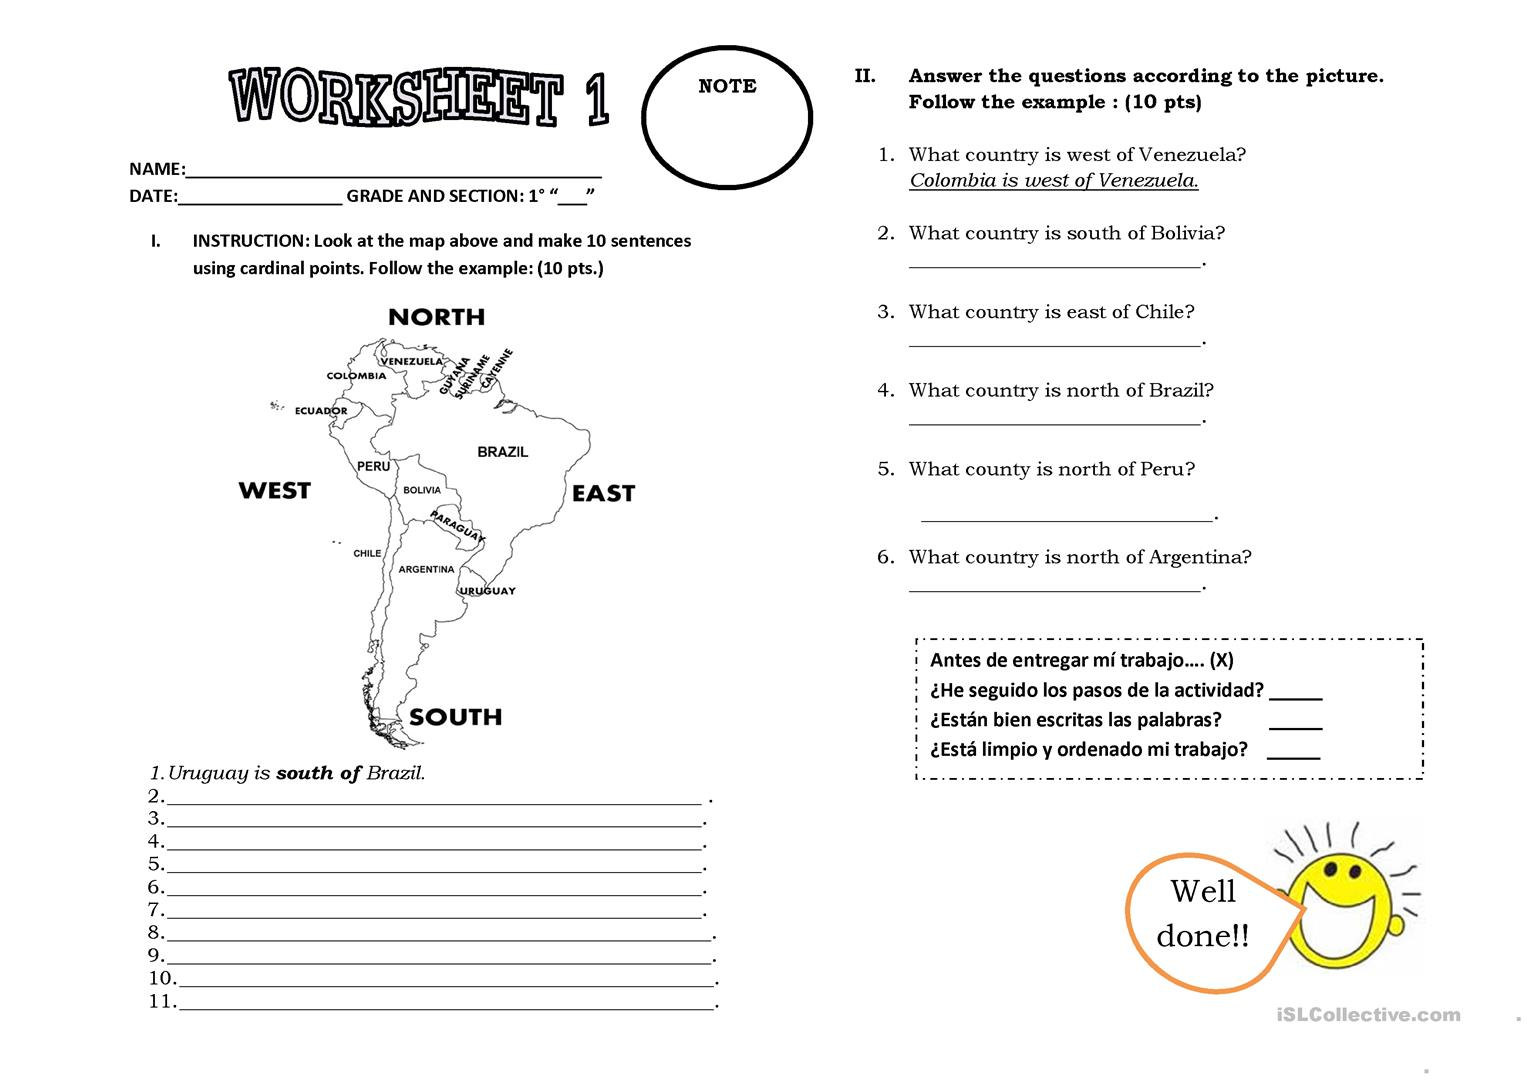 Worksheets Cardinal Directions Worksheet cardinal points worksheet free esl printable worksheets made by full screen